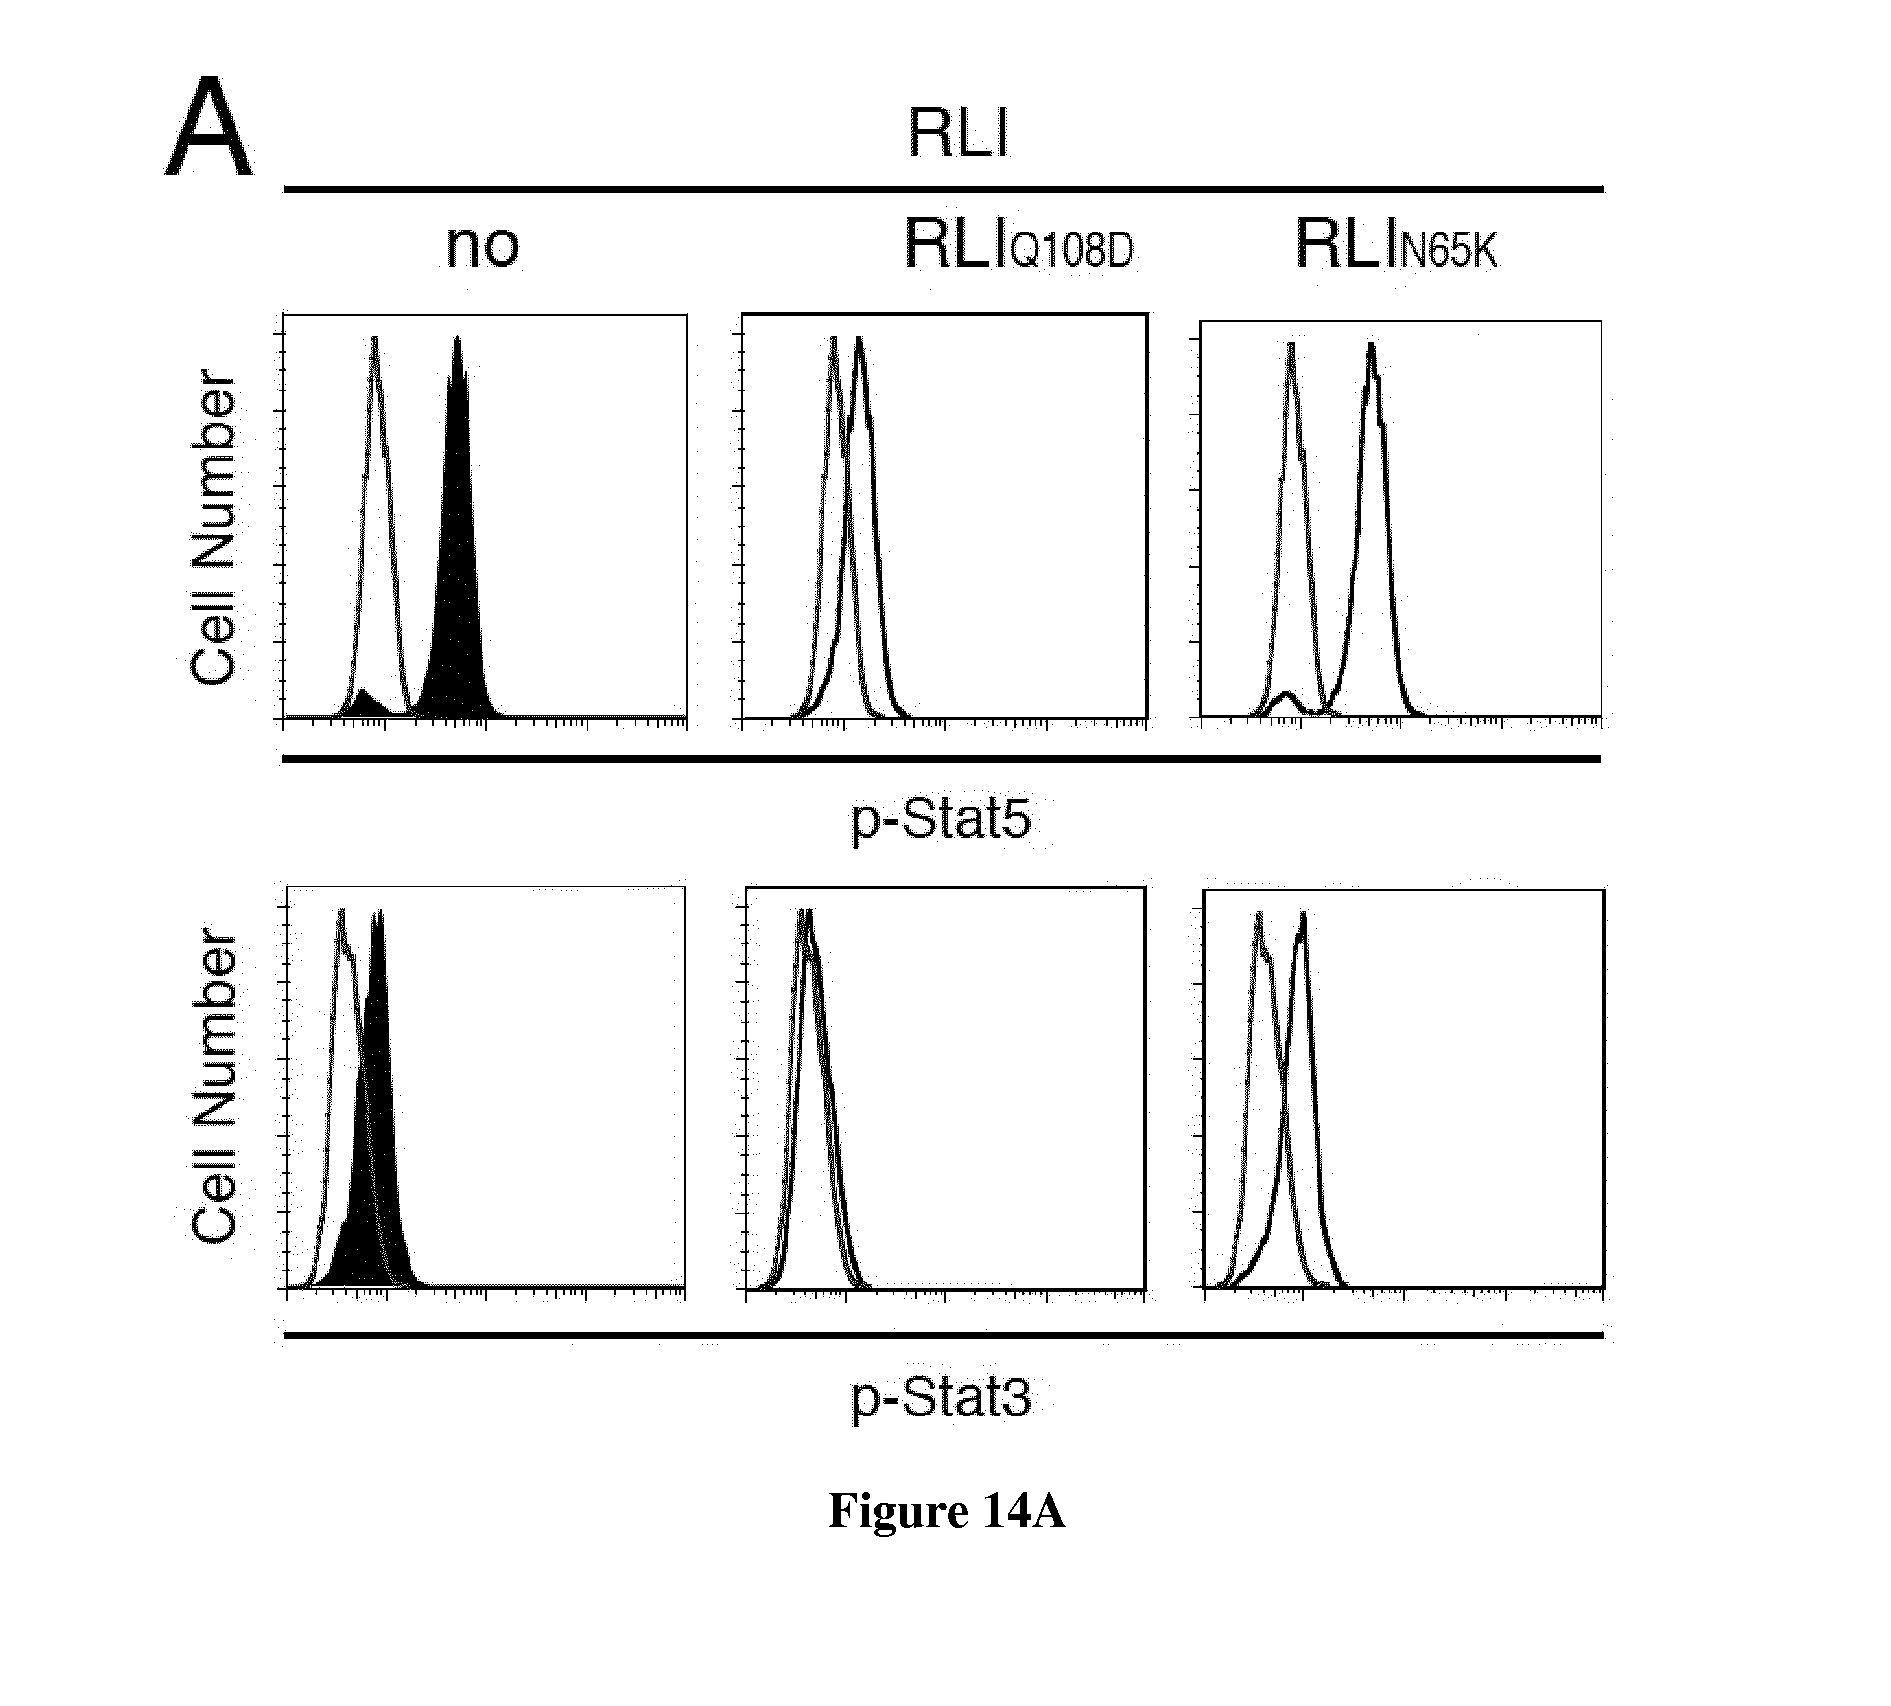 US20180258174A1 - Specific interleukin-15 (il-15) antagonist polypeptide  and uses thereof for the treatment of inflammatory and auto-immune diseases  - Google Patents